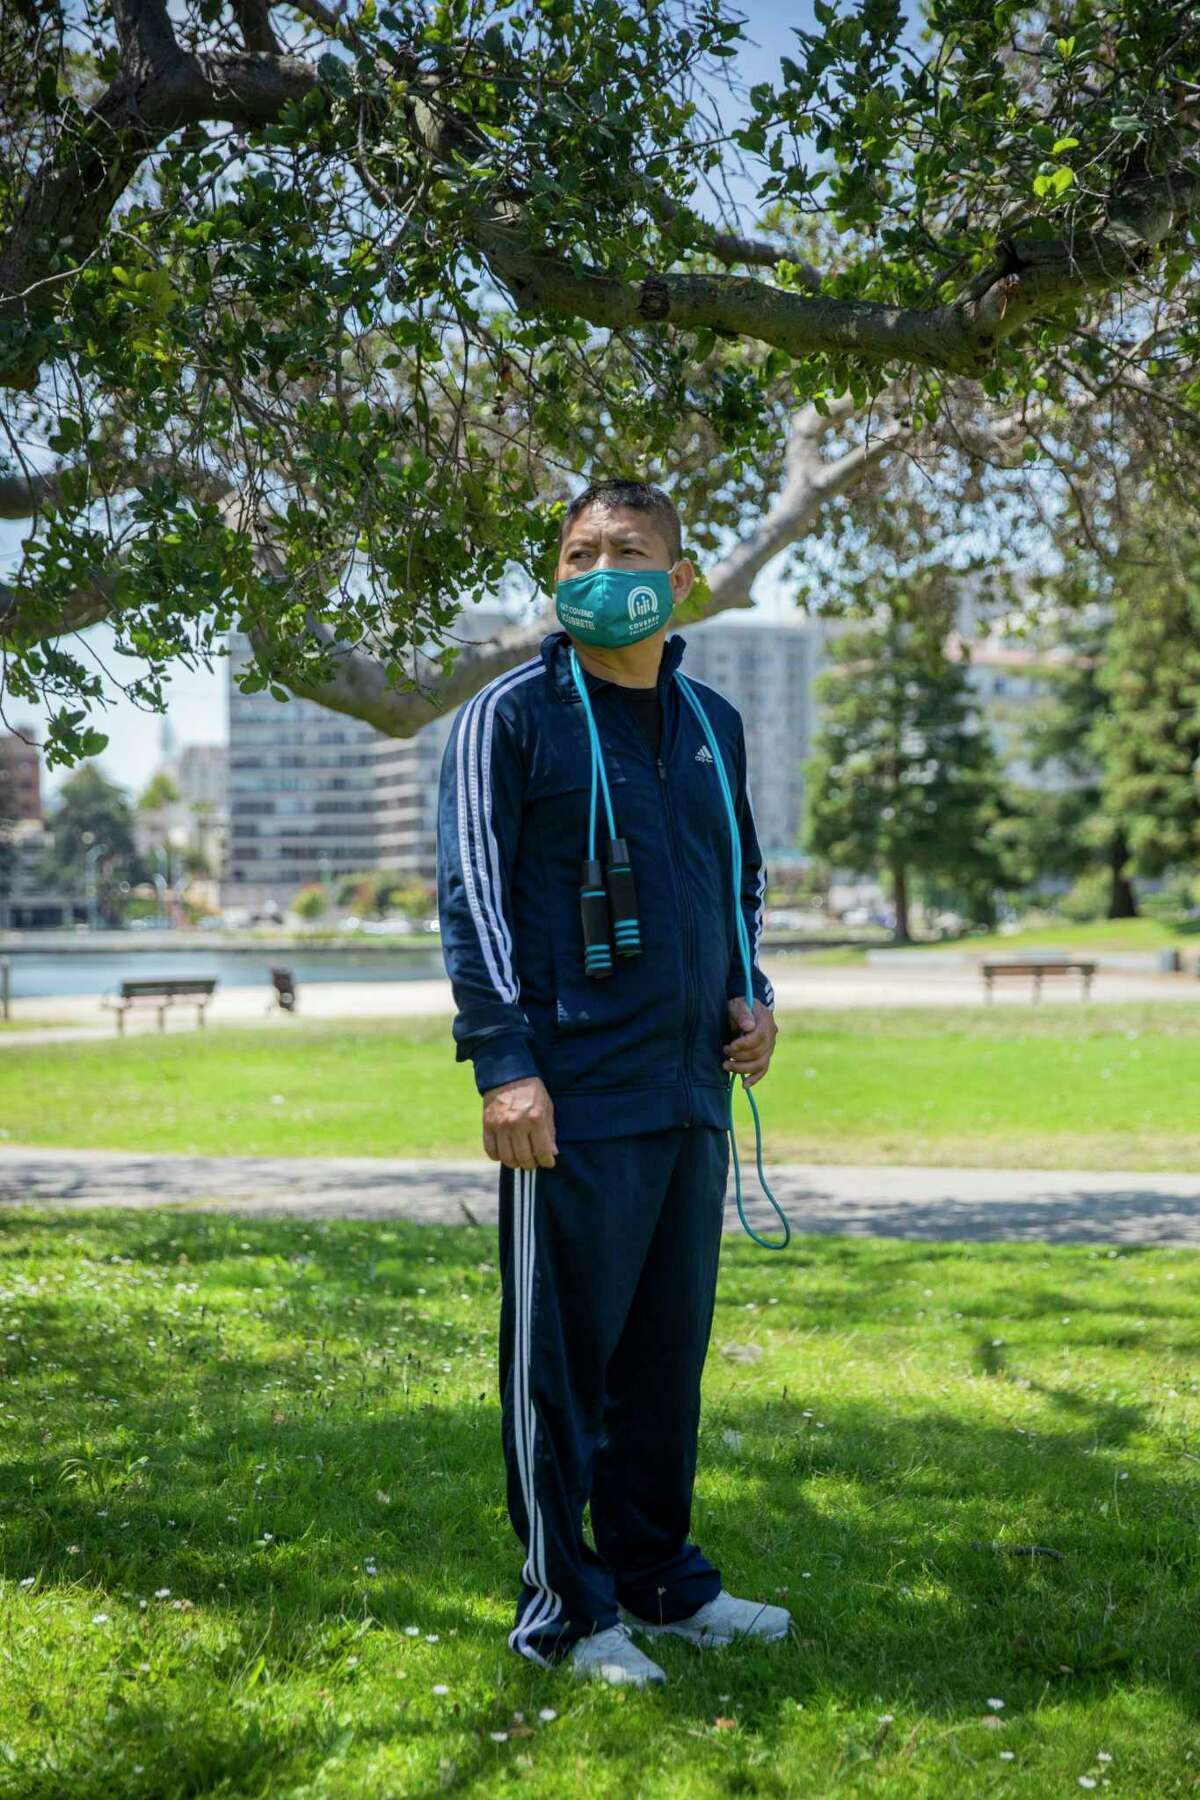 """Njeri Karanja is willing to follow the safety protocols but says she is very tired of it all.  Hernan Morales works at Lake Merritt in Oakland: """"We need to take care of each other.""""Claire Ramsey has a son who is too young to be vaccinated, so she is even more careful than she would have been."""